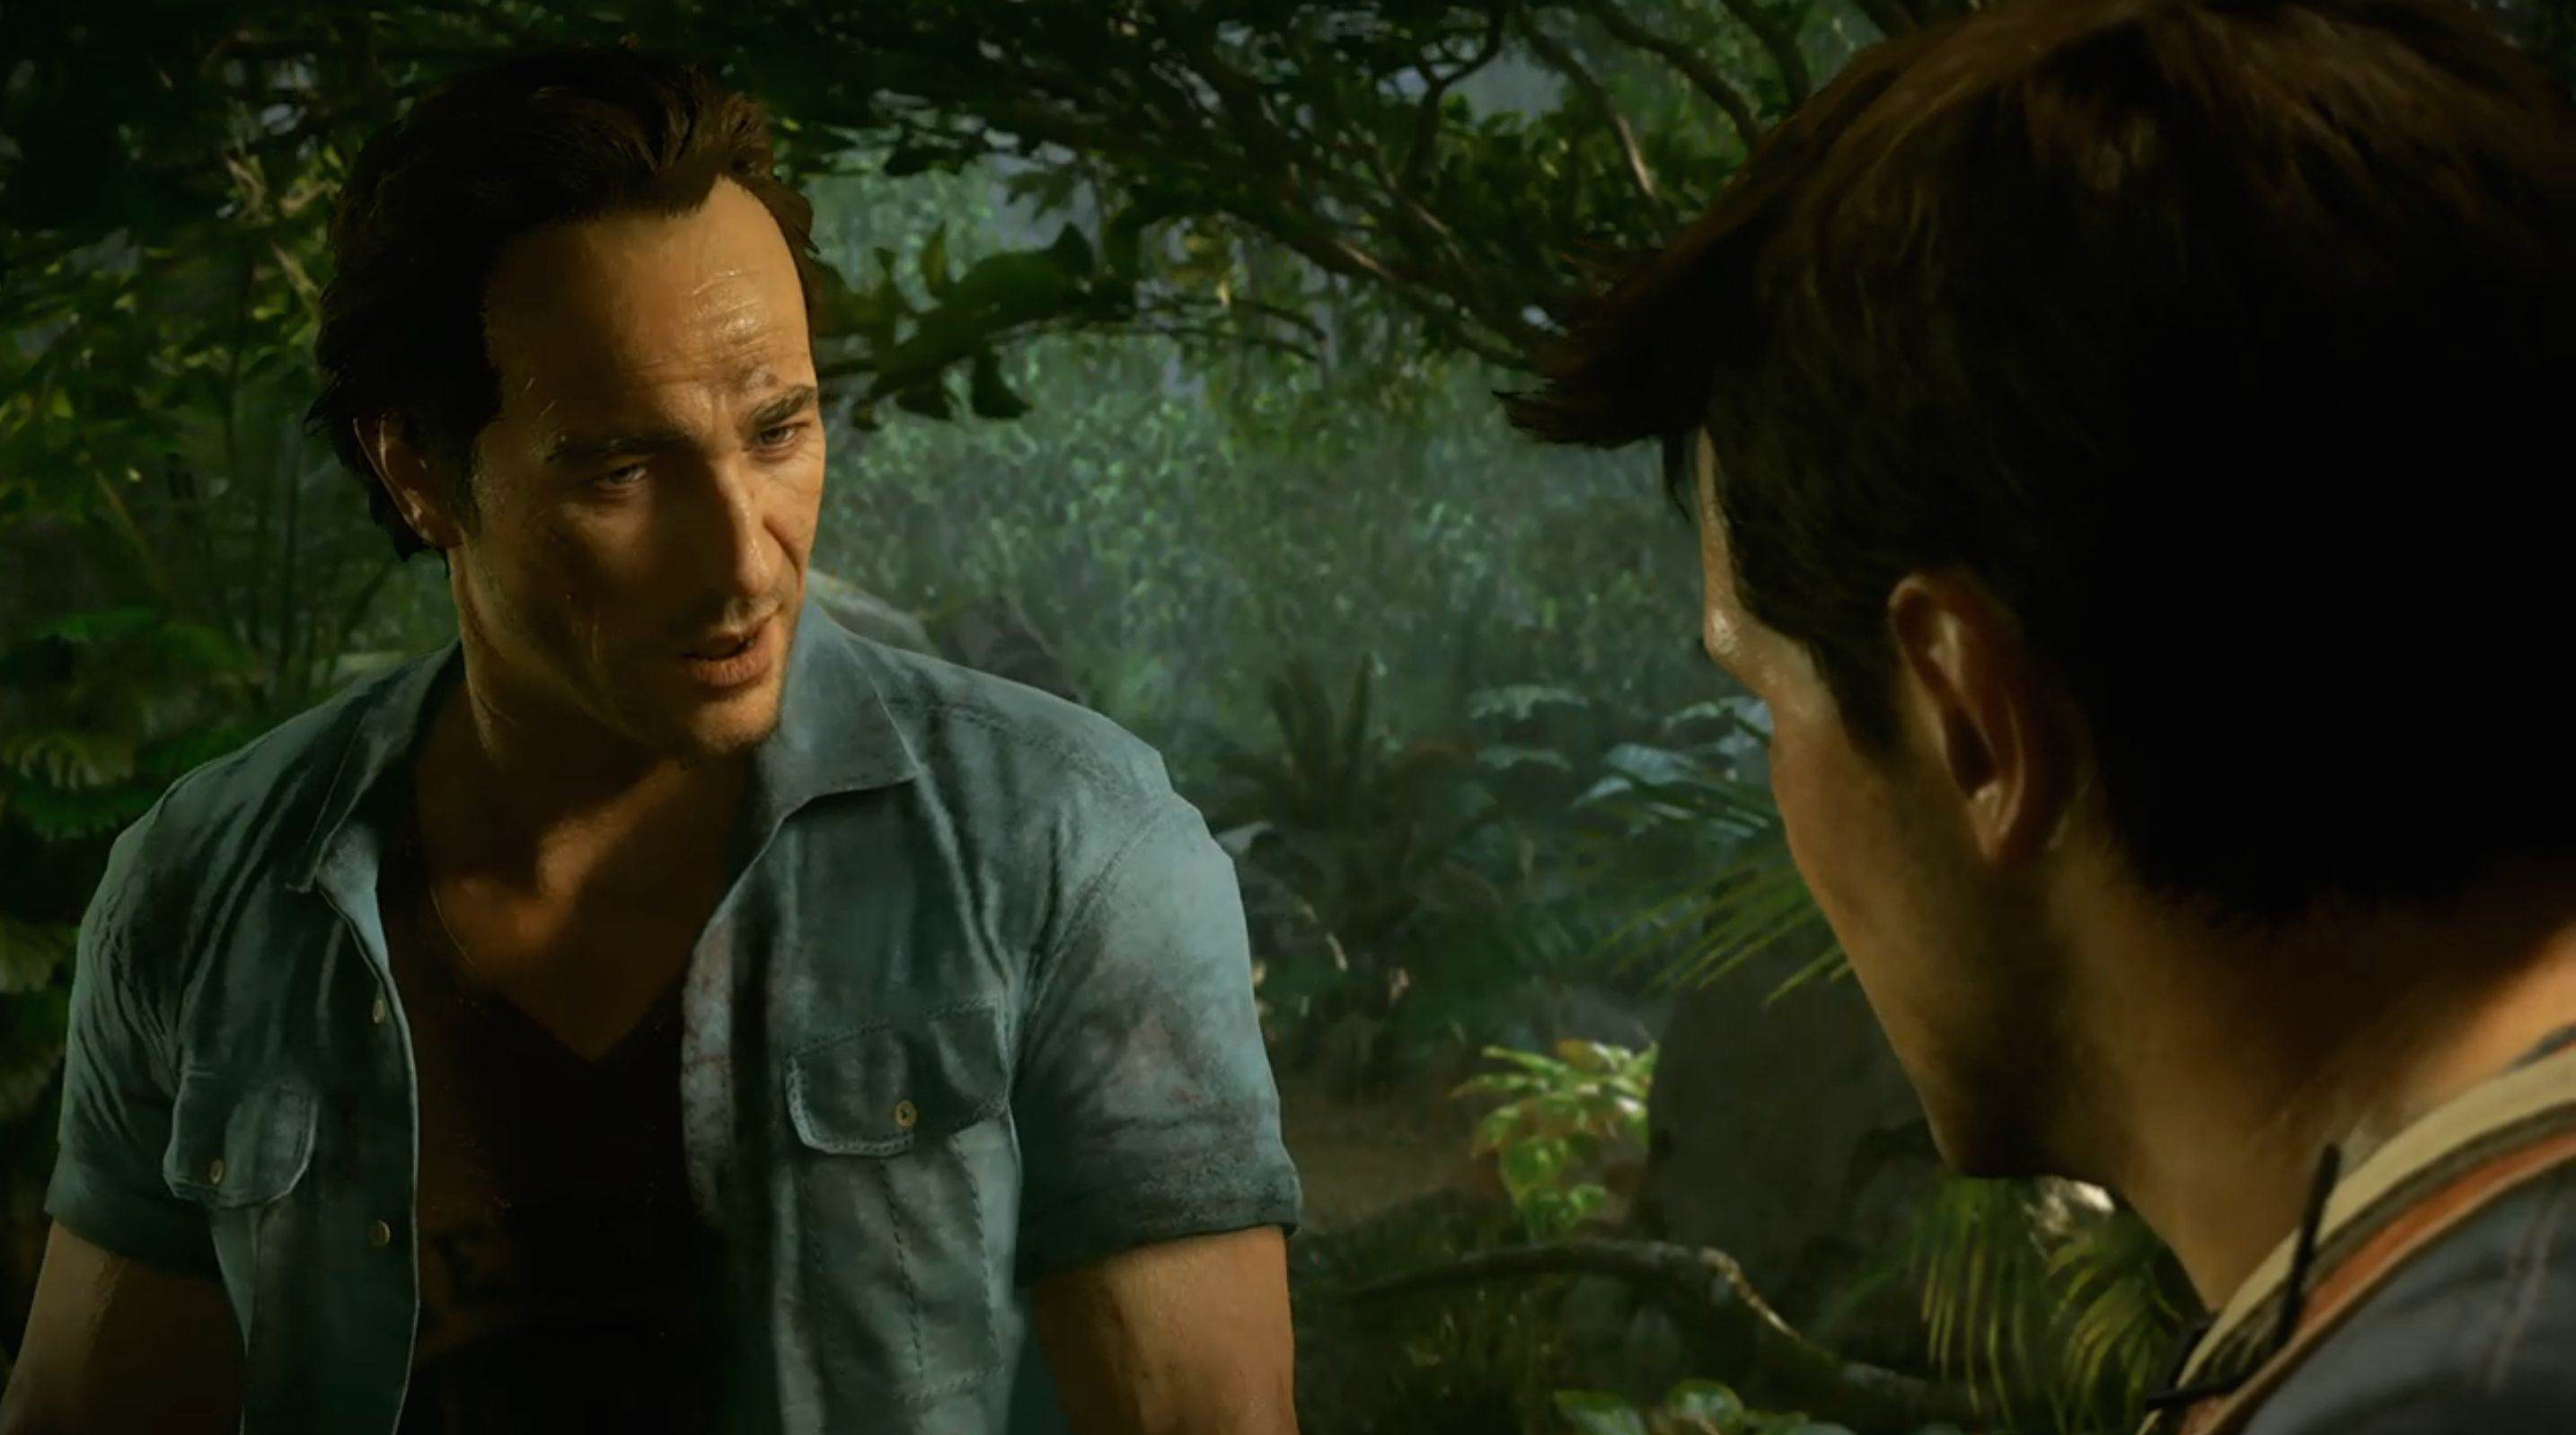 screen_shot_2014-12-06_at_1-28-55_pm-0-uncharted-4-sam-drake-may-not-be-the-brother-we-think-he-is-png-294475